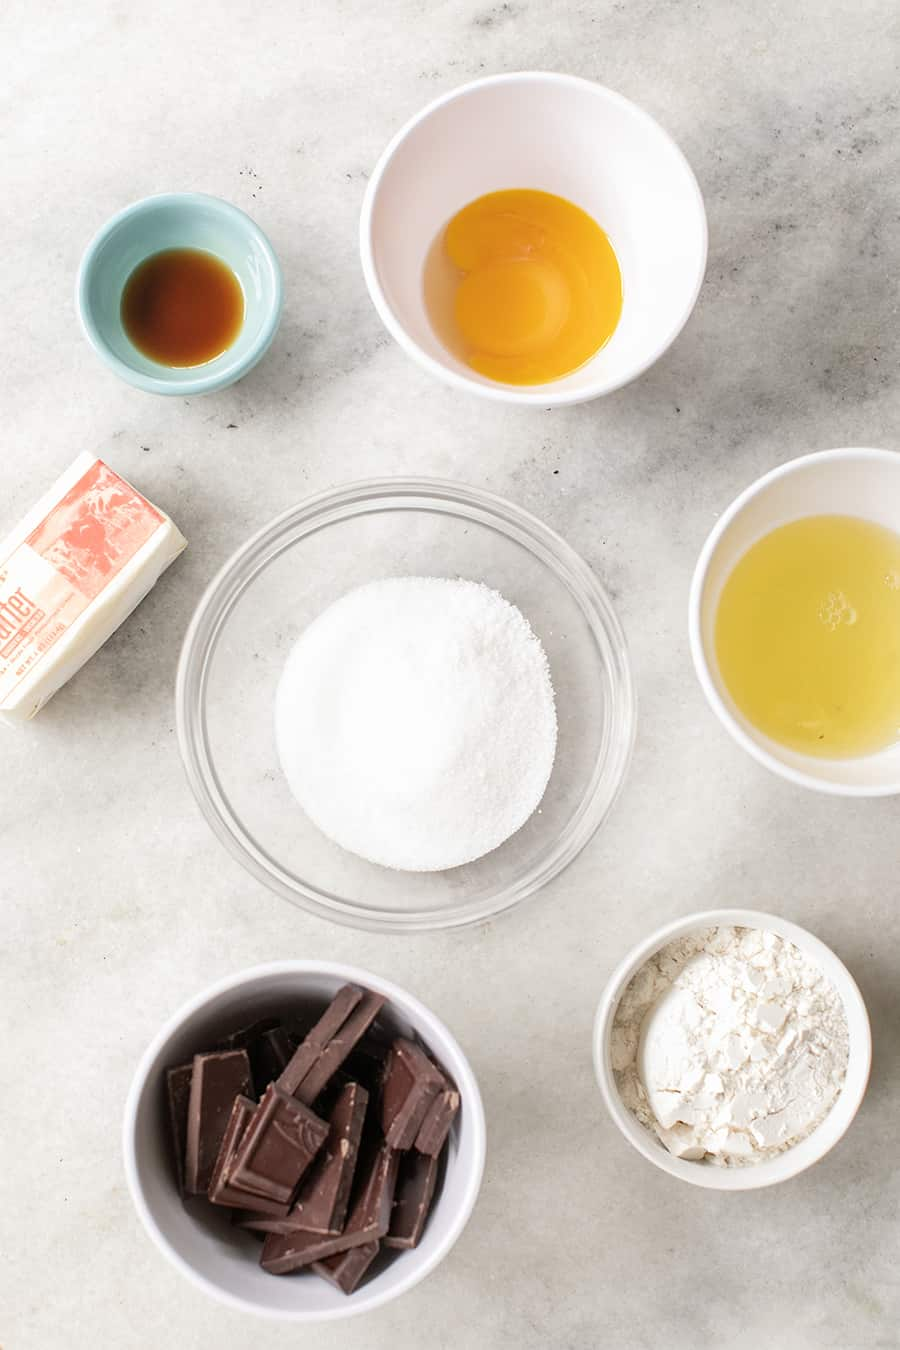 Ingredients for a chocolate souffle recipe